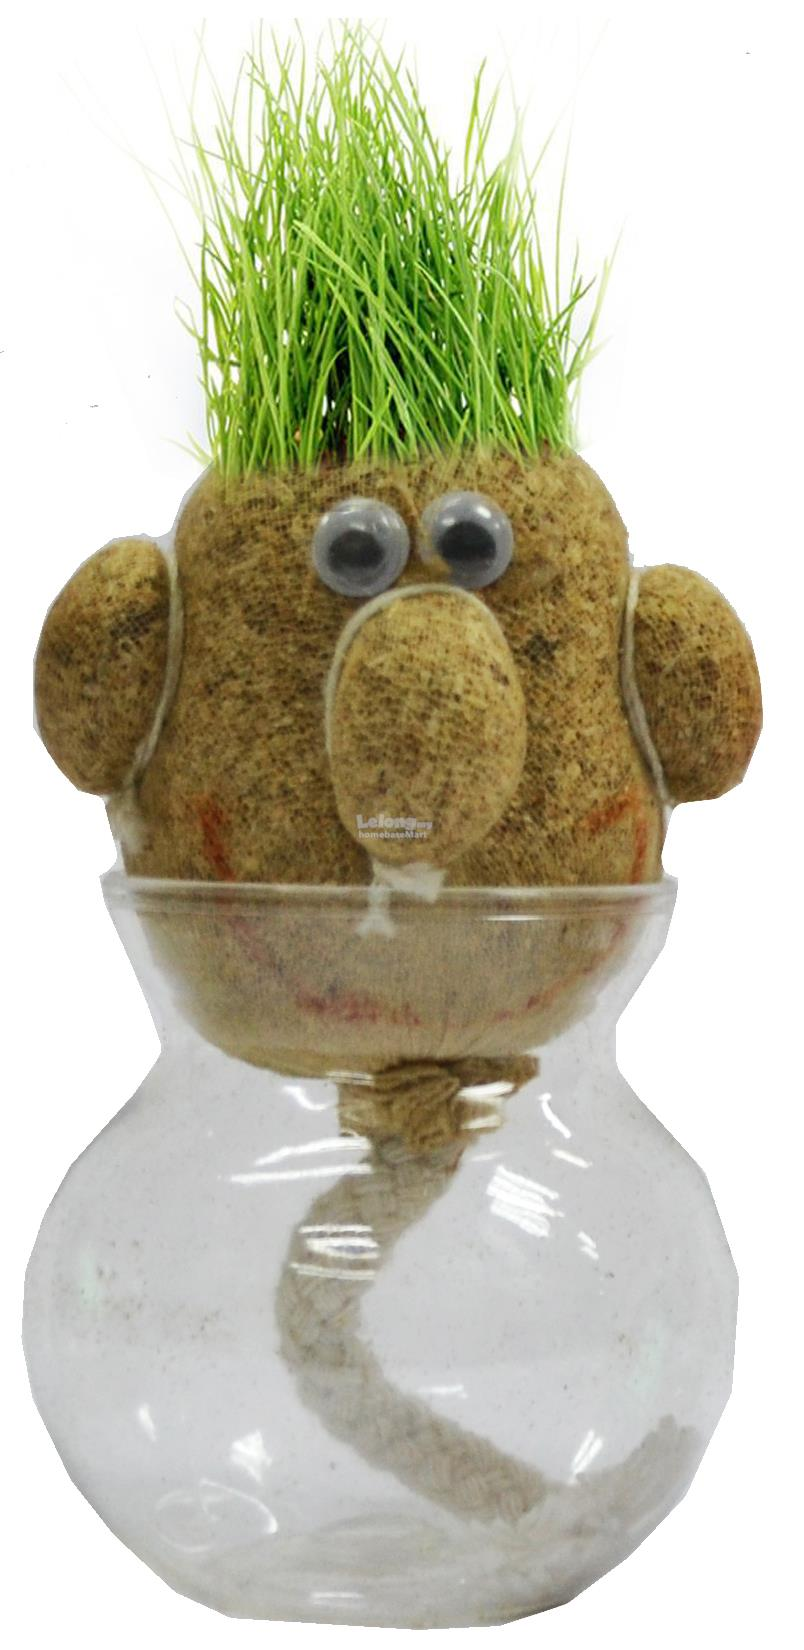 HOME DECO GIFT DIY SET Grass Head Dolls - Small Face Dark Brown